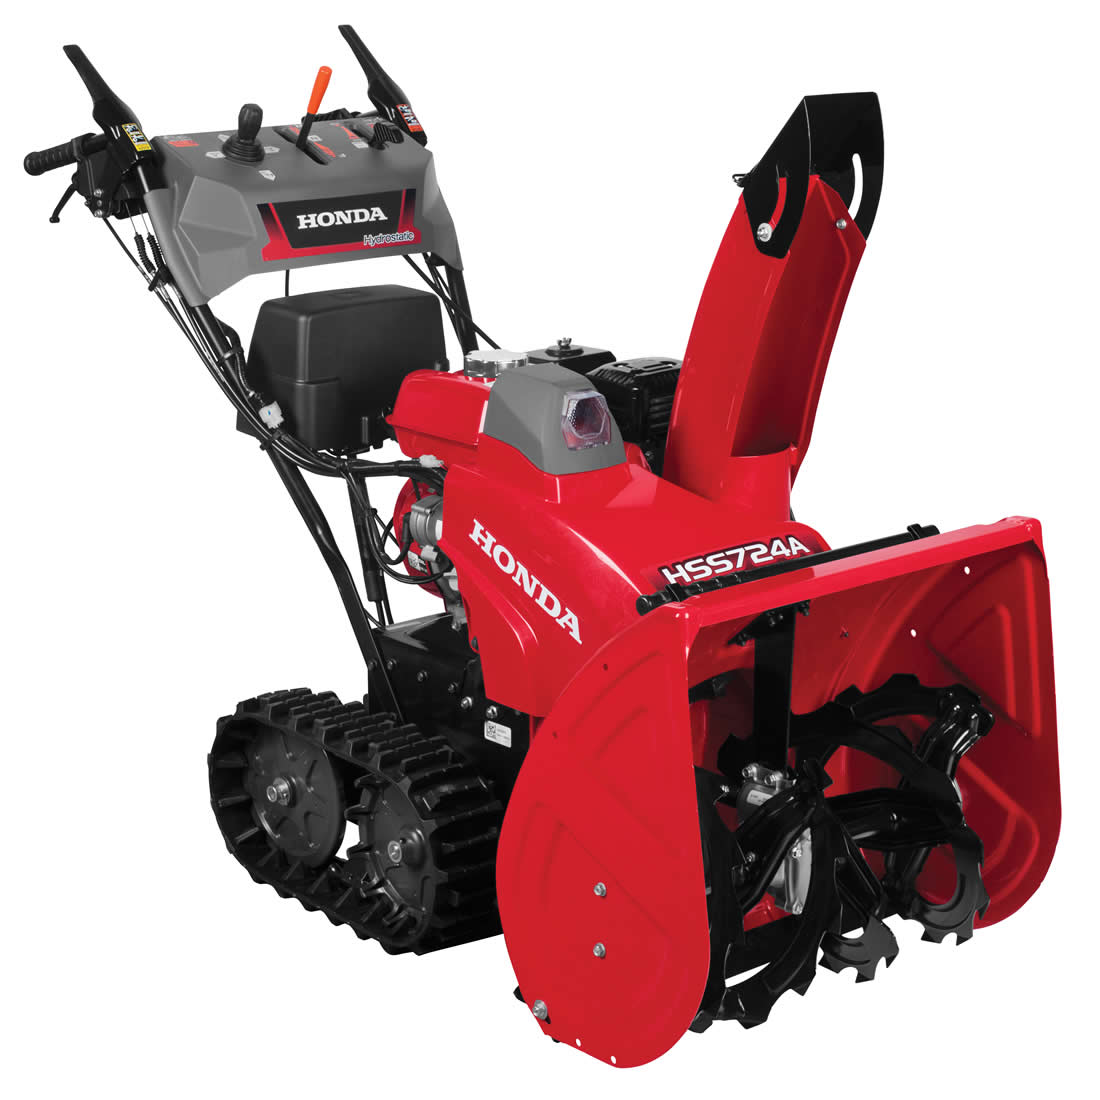 2016 Honda Power Equipment HSS724ATD in El Campo, Texas